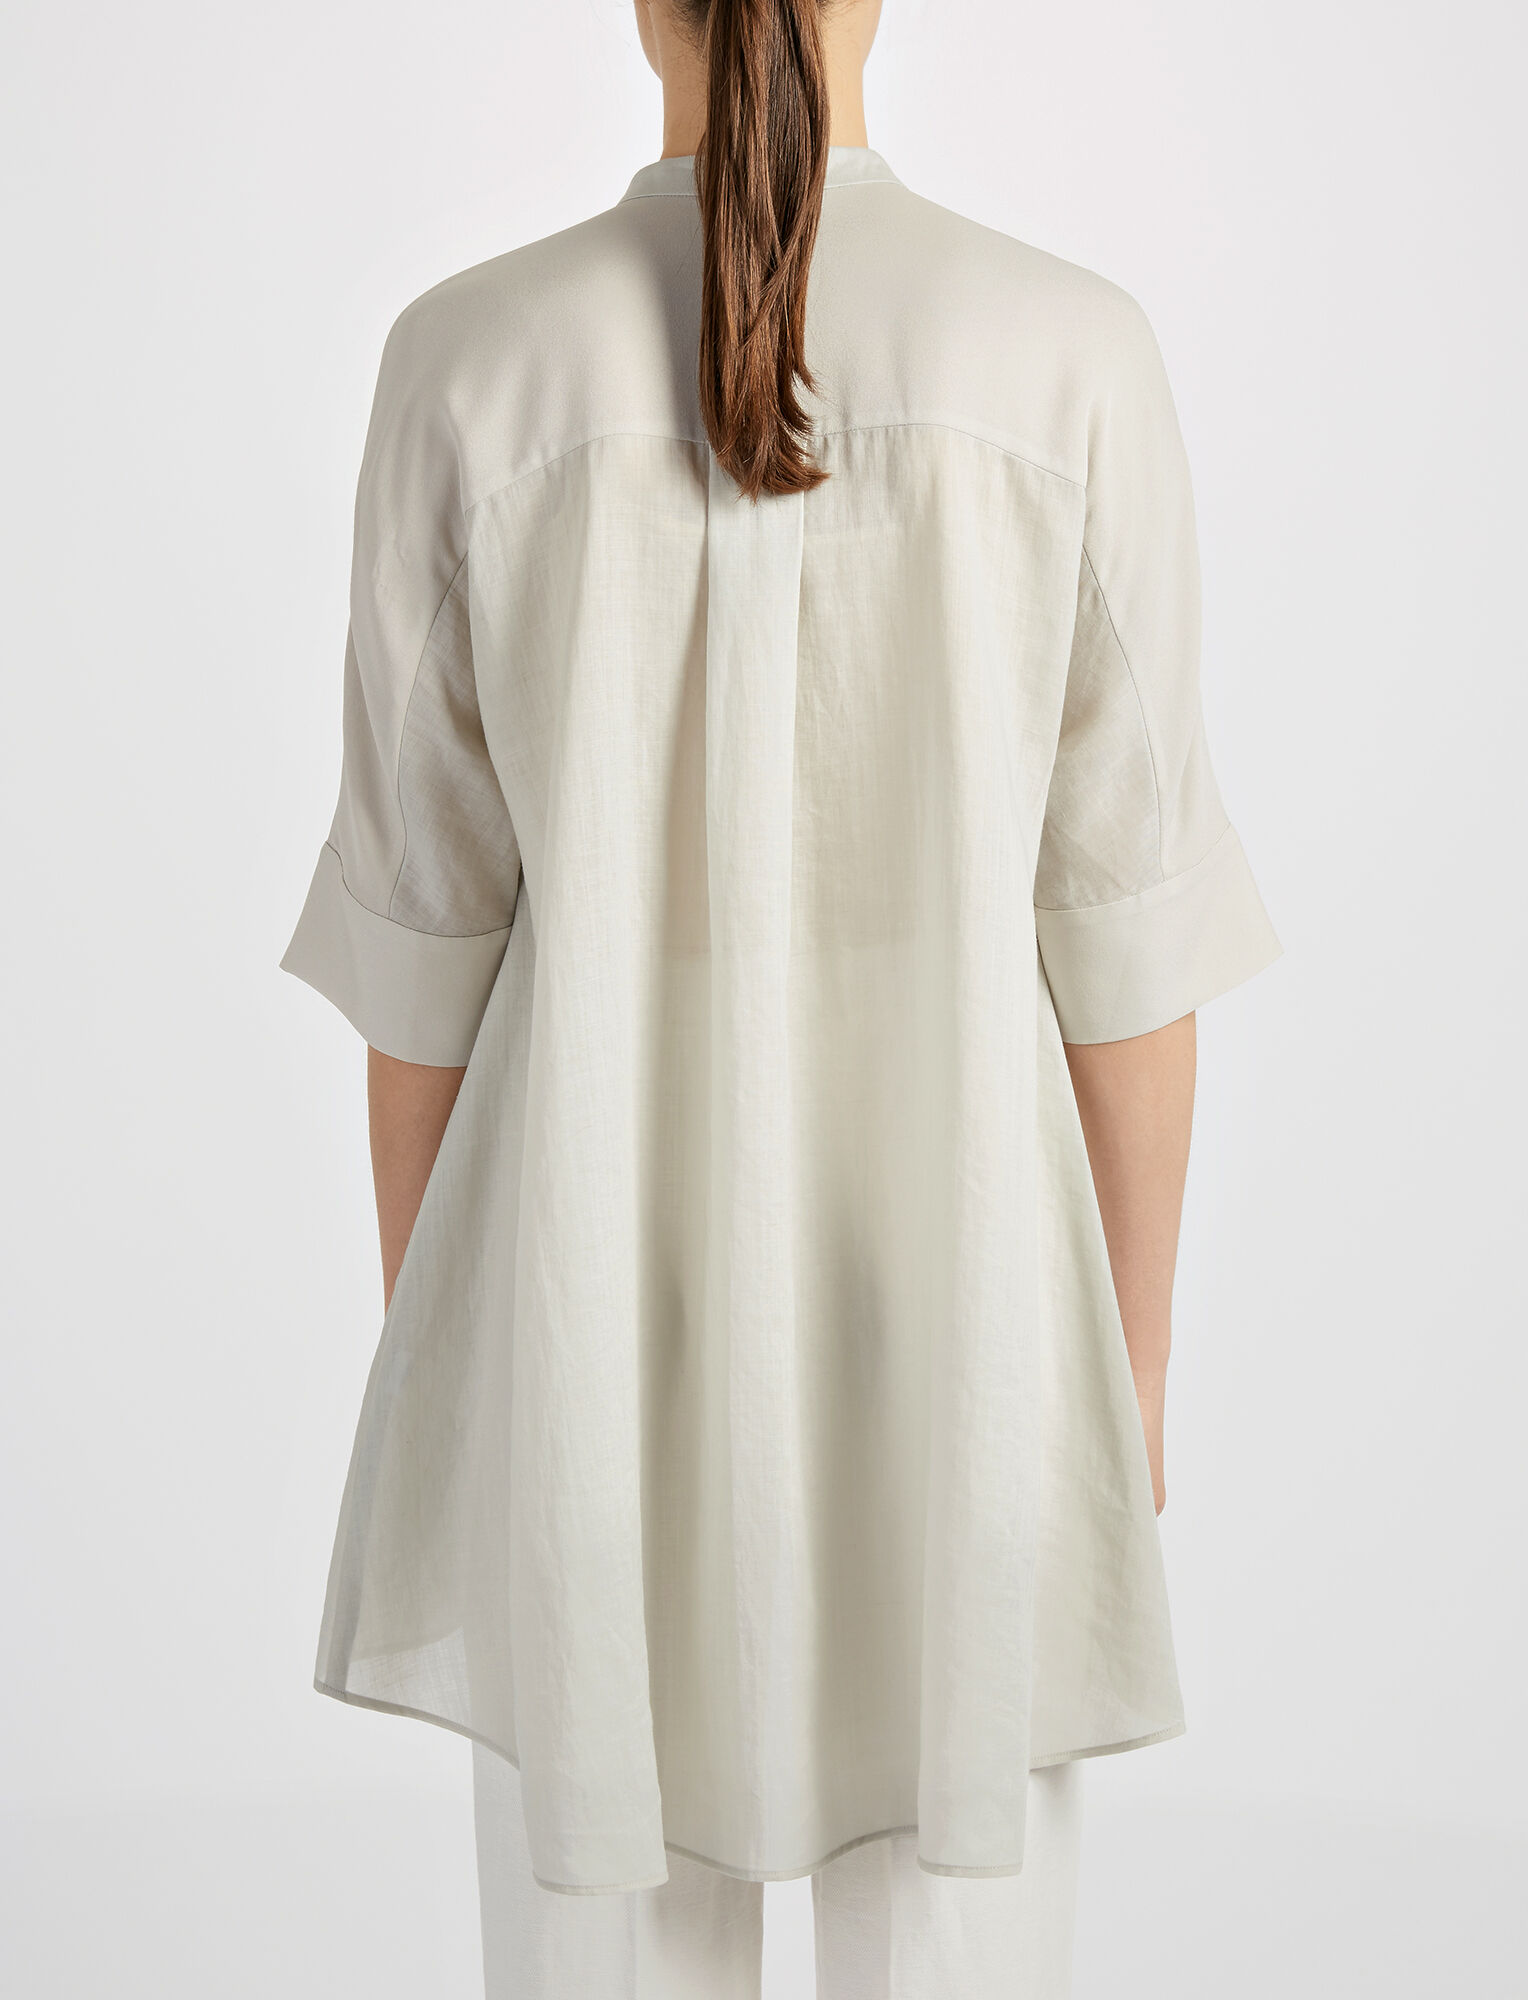 Joseph, Ramie Voile Heather Blouse, in COCONUT